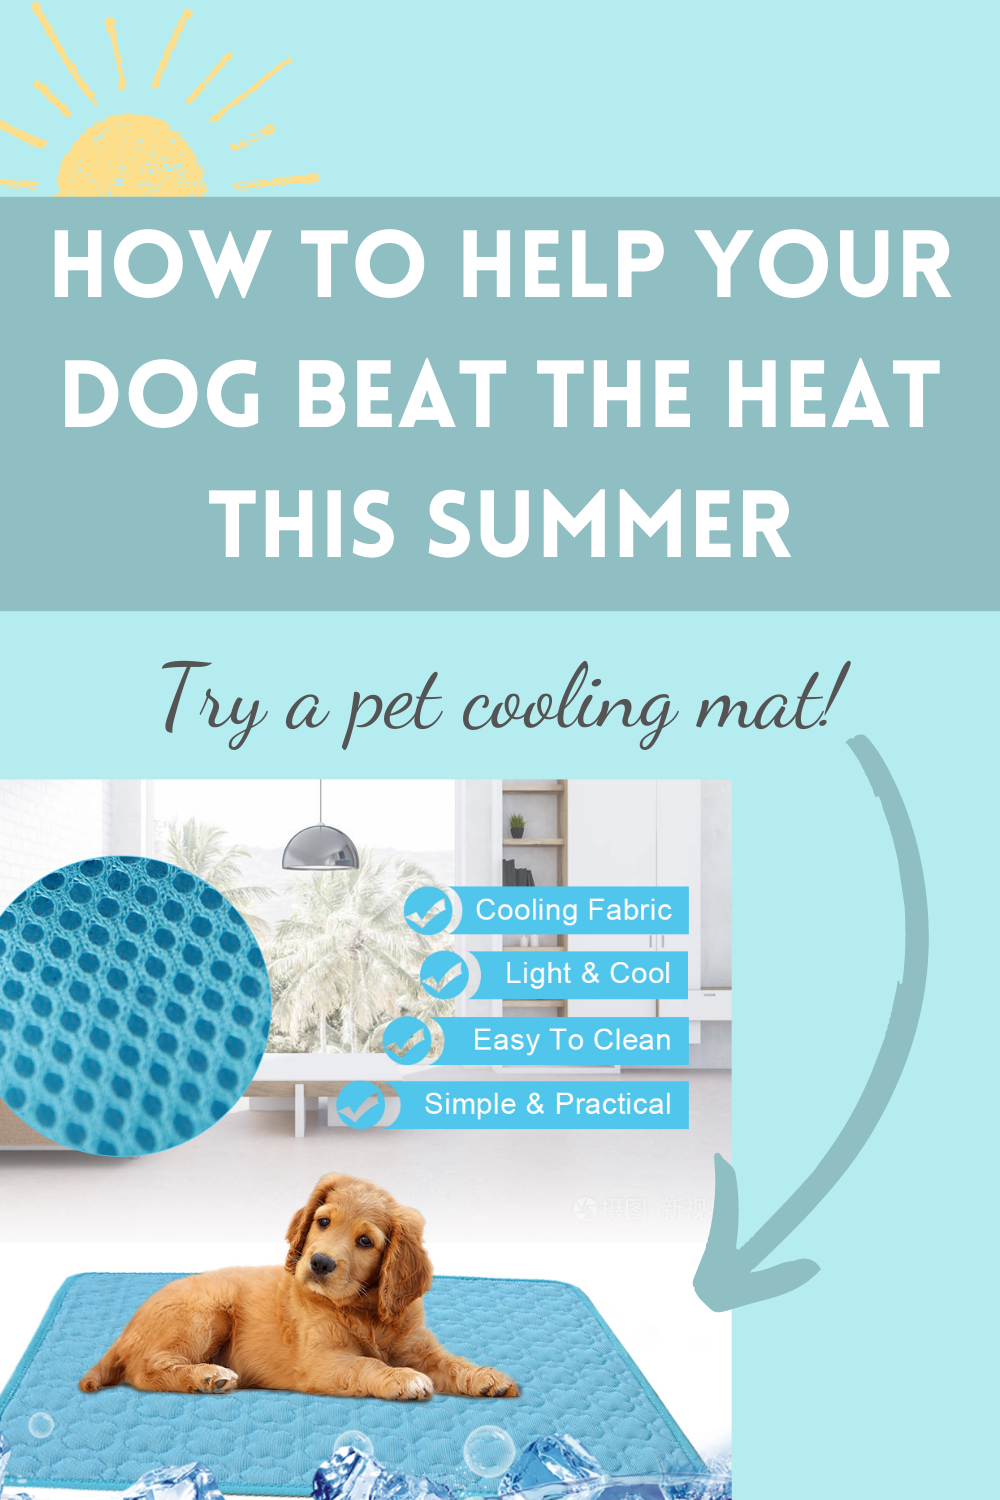 Keep Your Dog Cool This Summer Pet Cooling Mat For Heat Relief In 2020 Summer Dog Pets Your Dog